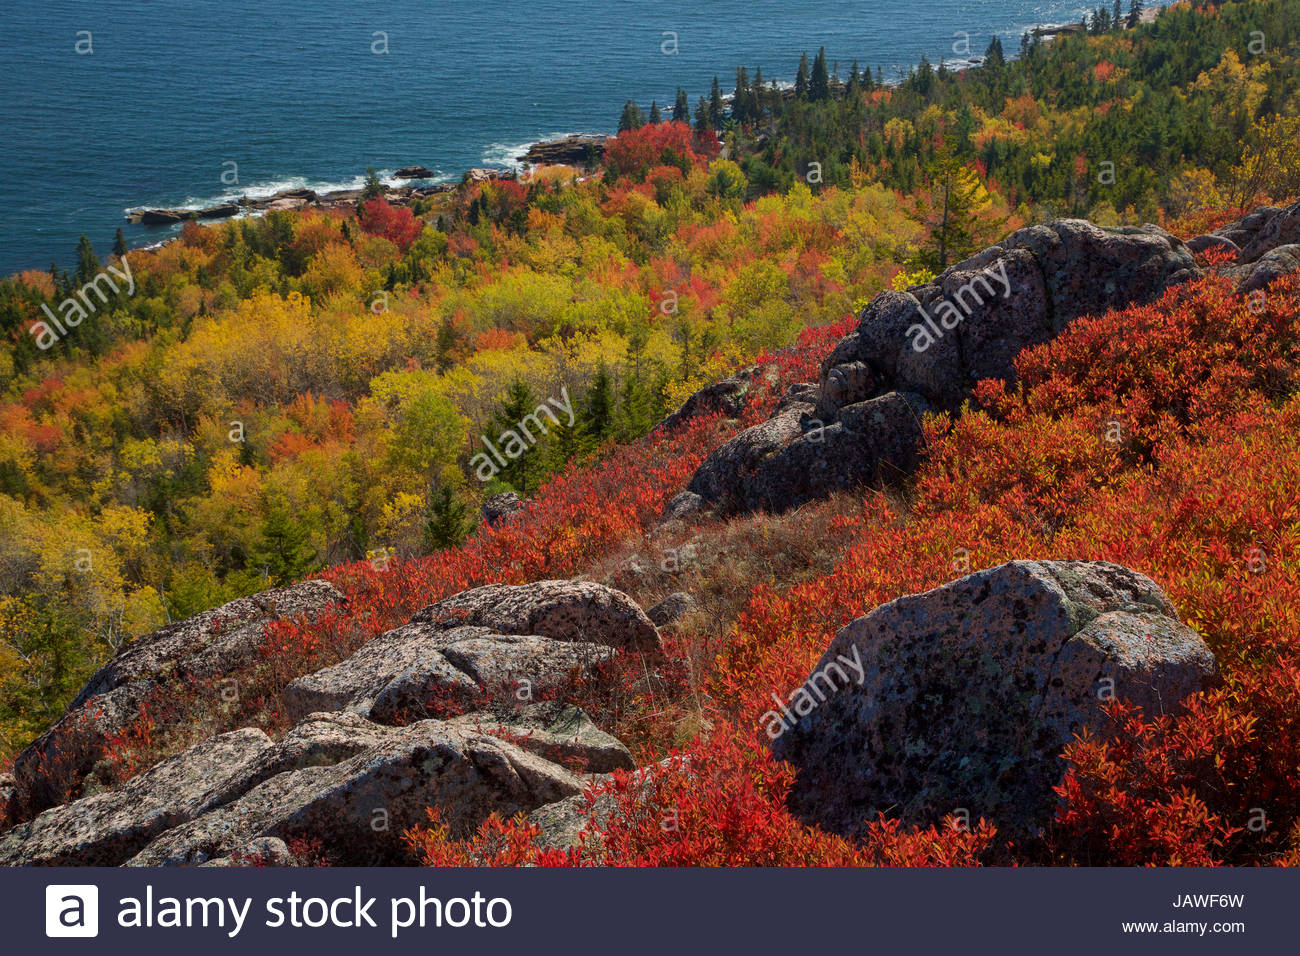 Vibrant fall colors on slopes leading down to the Eastern shore of Acadia National Park. - Stock Image